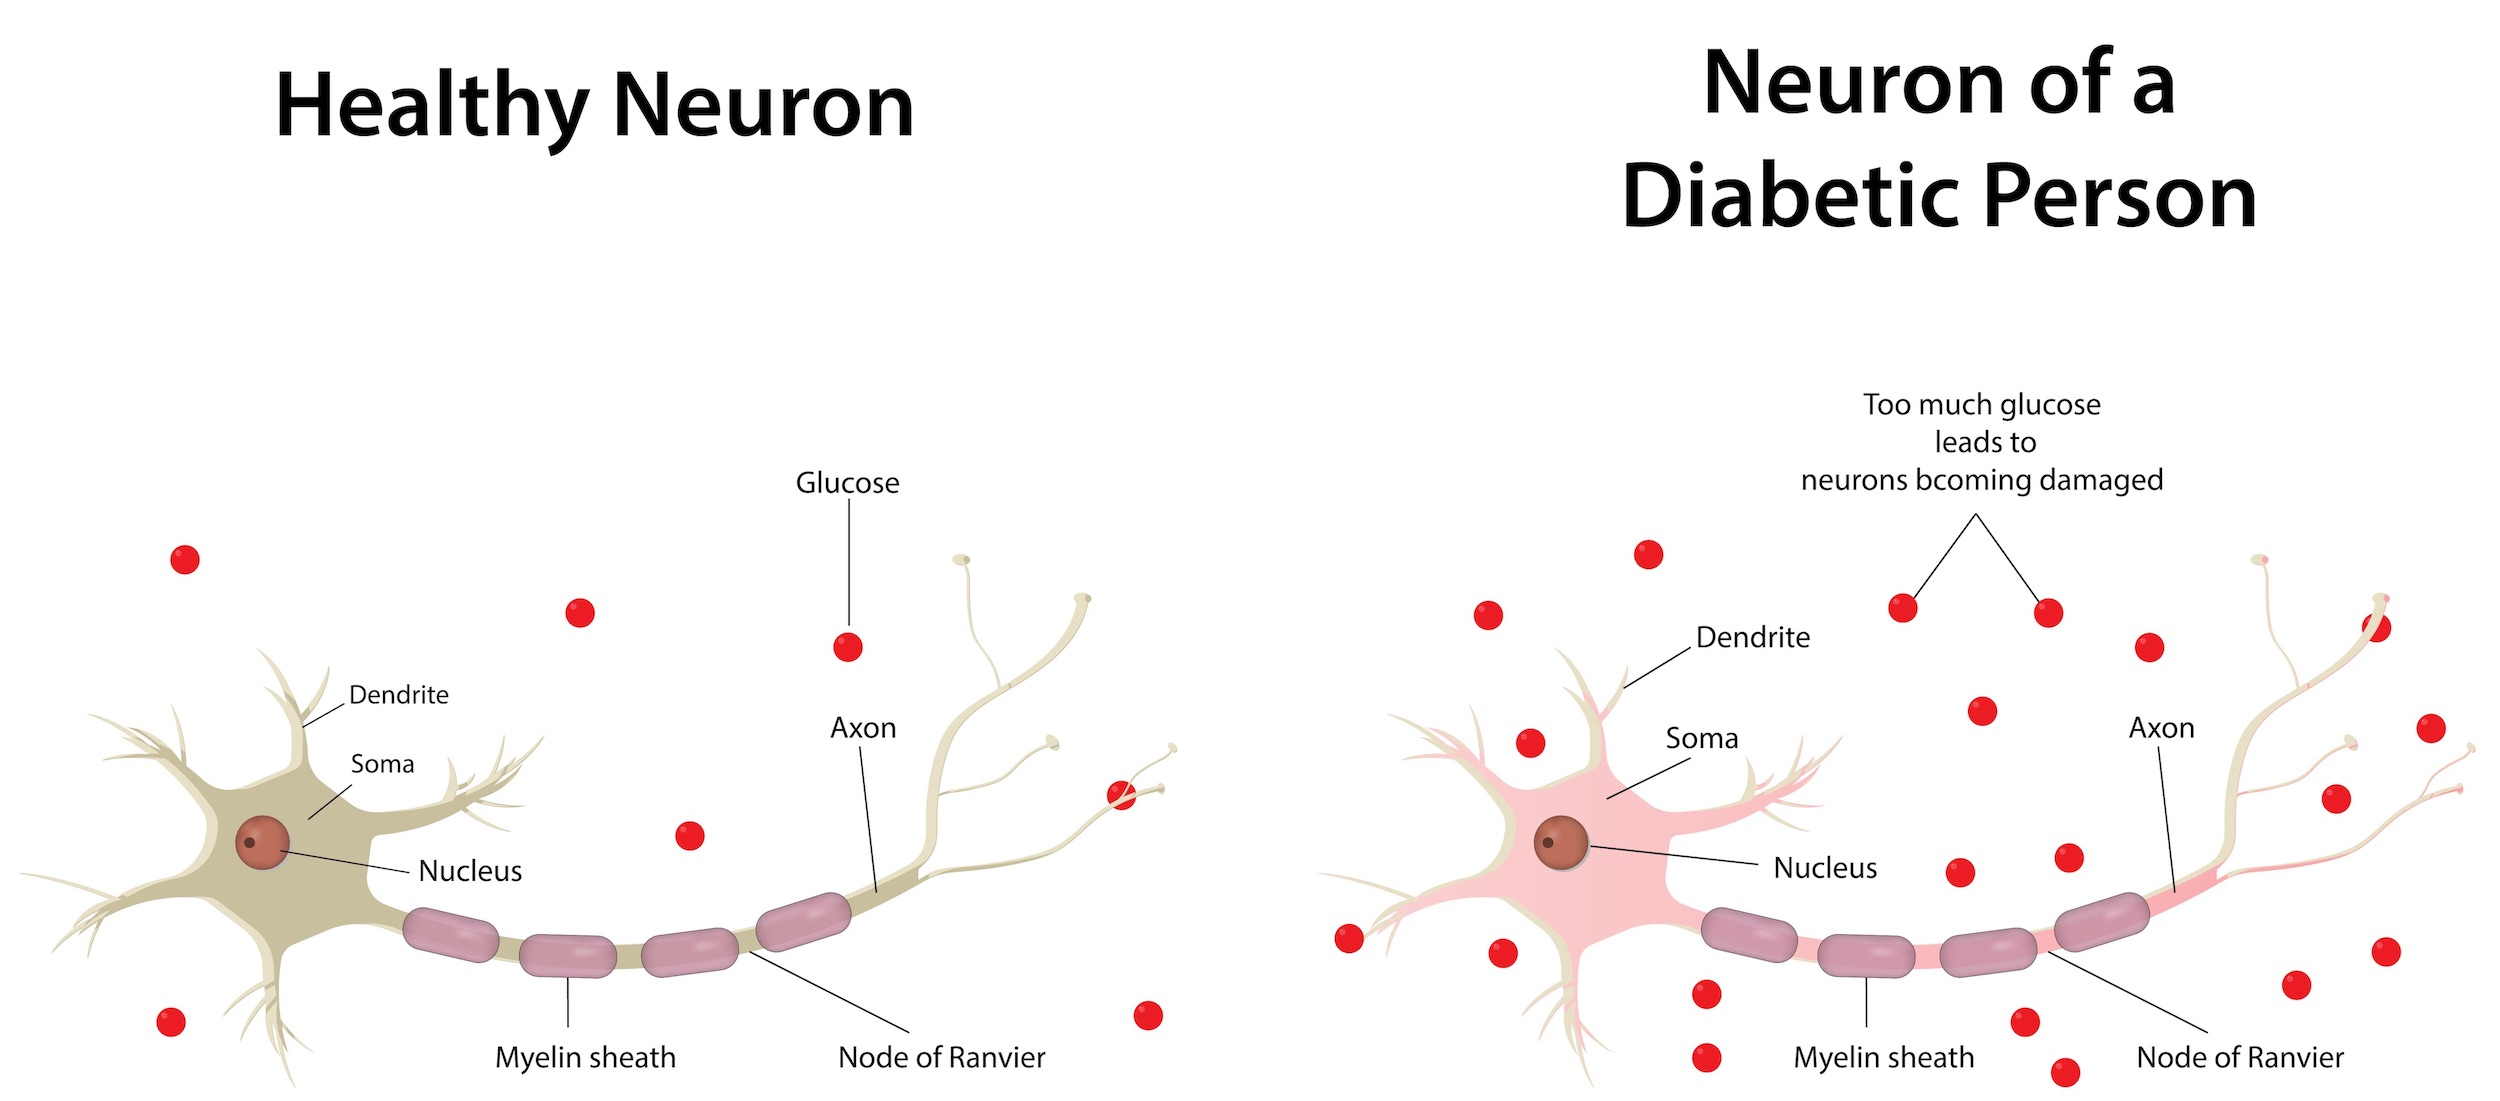 Diabetic neuropathy is a microvascular complication of type 1 diabetes